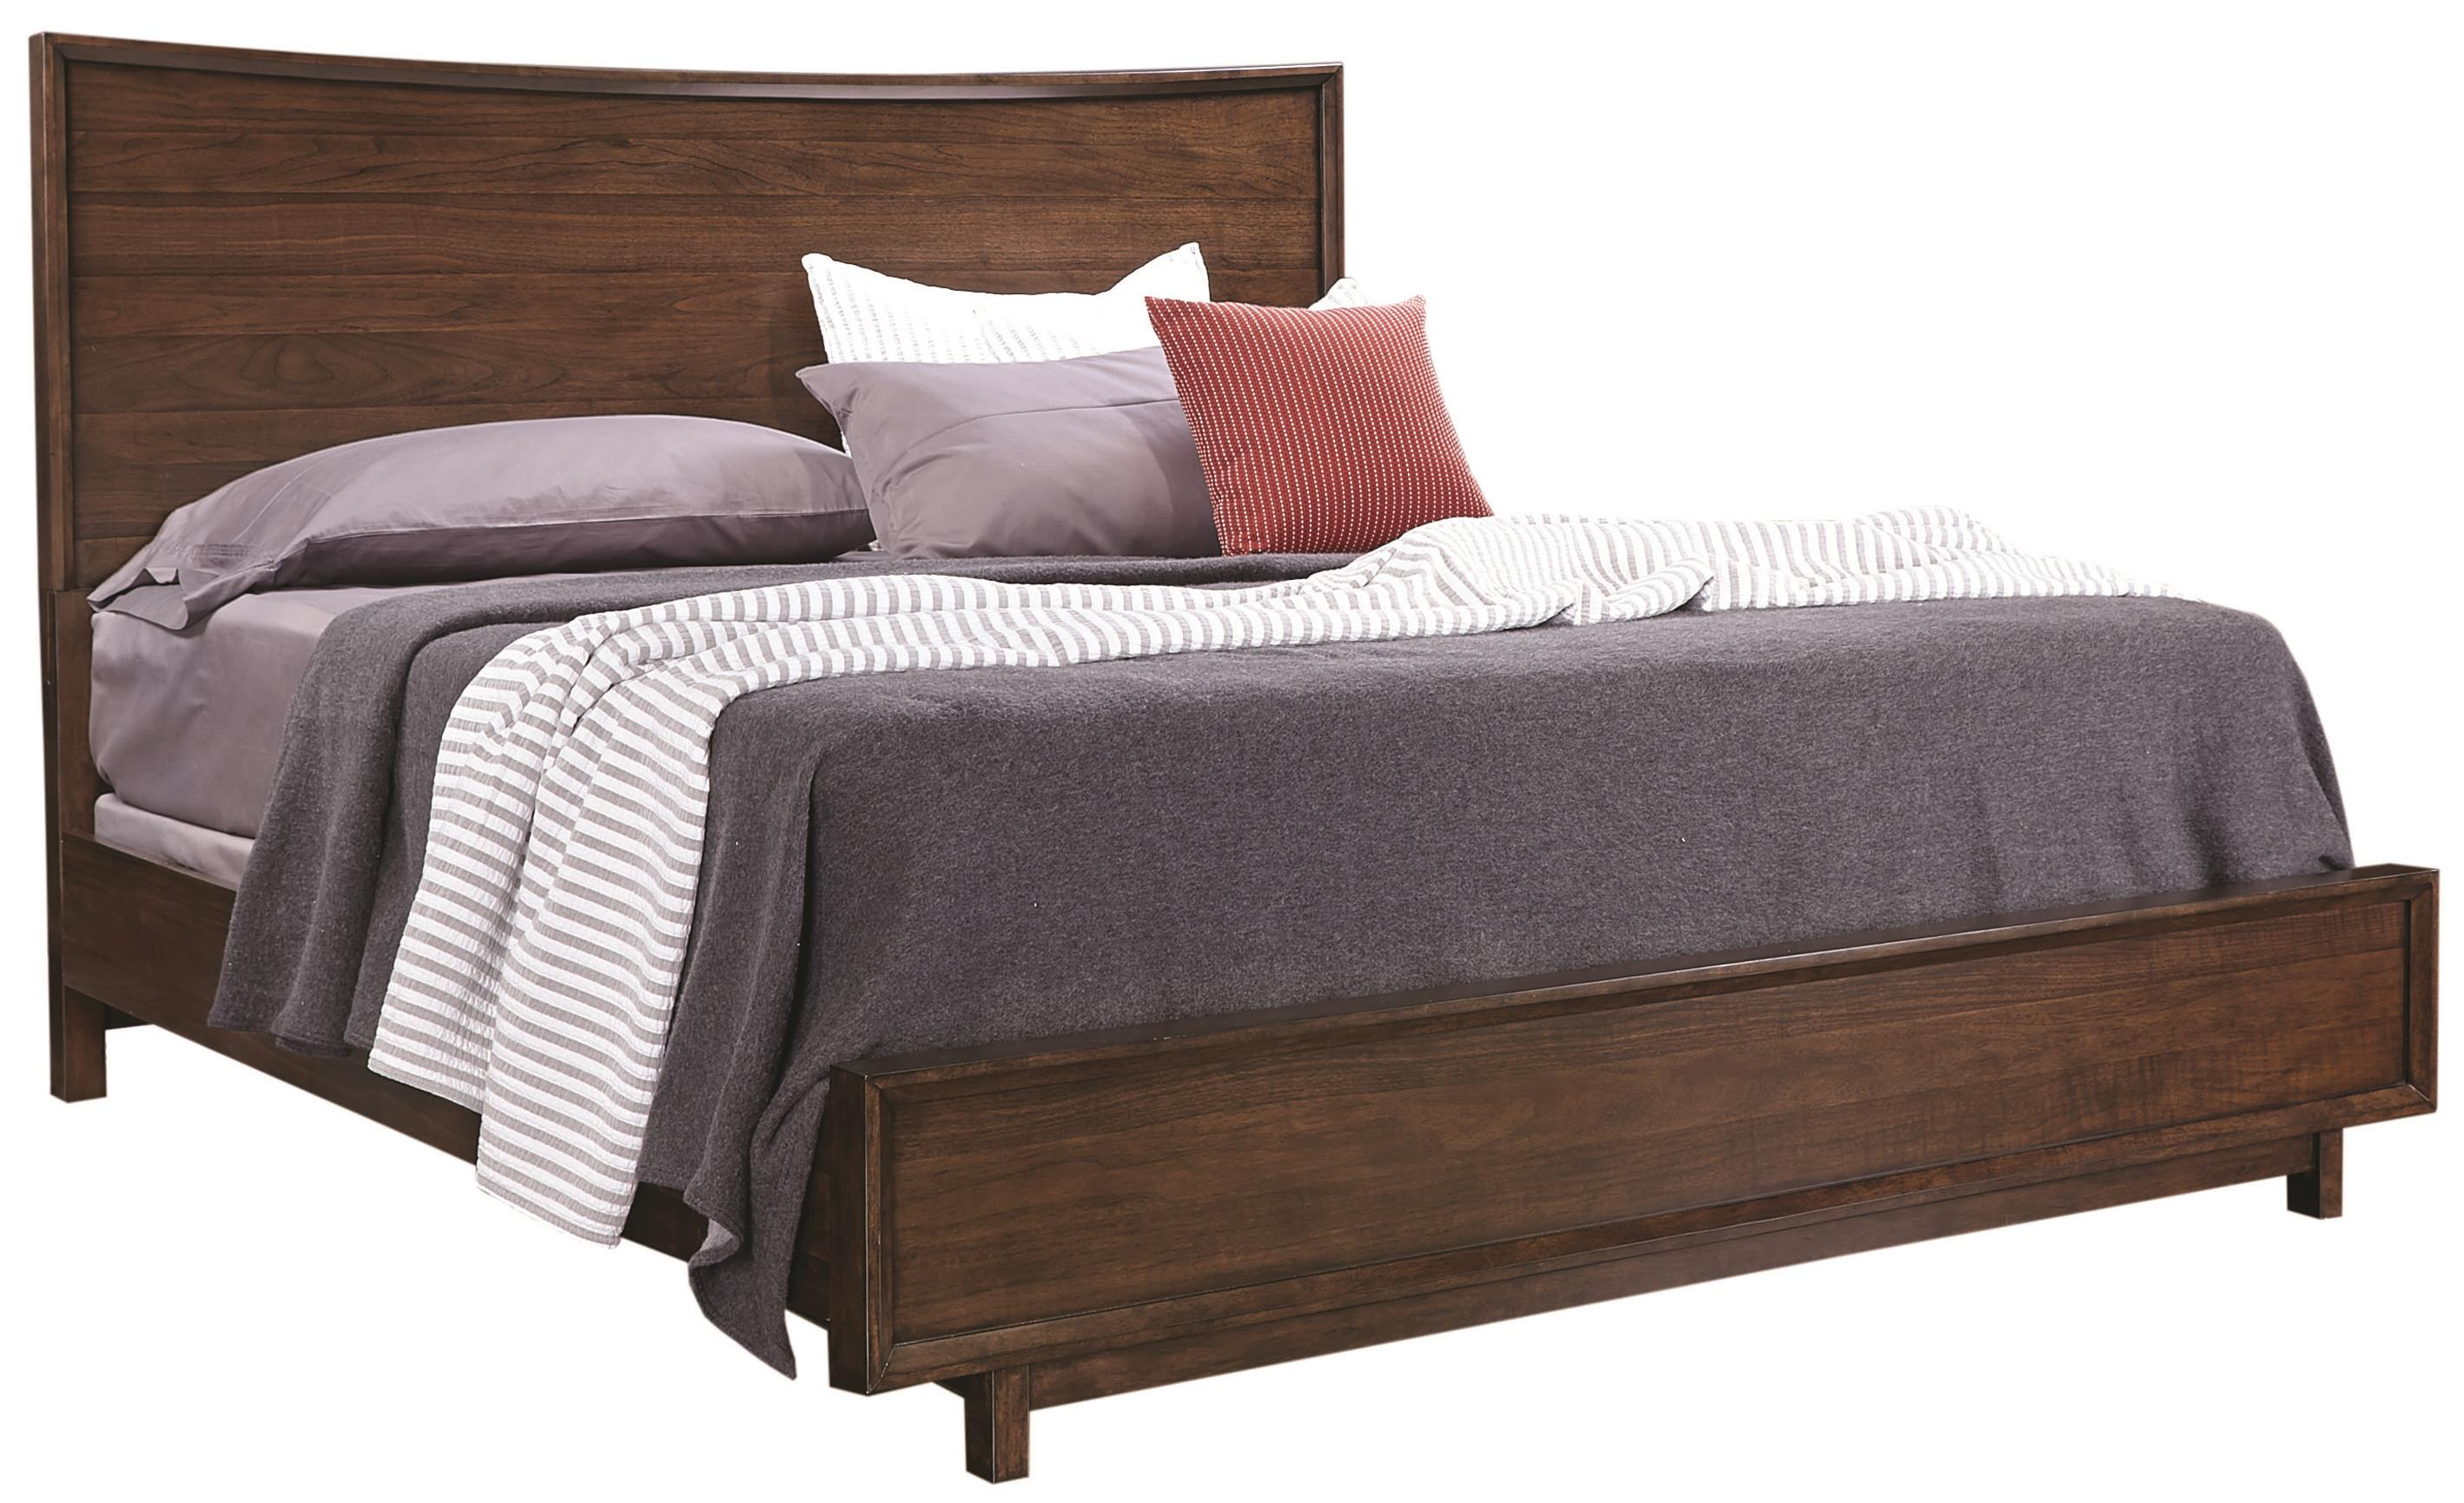 Aspenhome Walnut Heights California King Panel Bed - Item Number: IWH-415+407+410